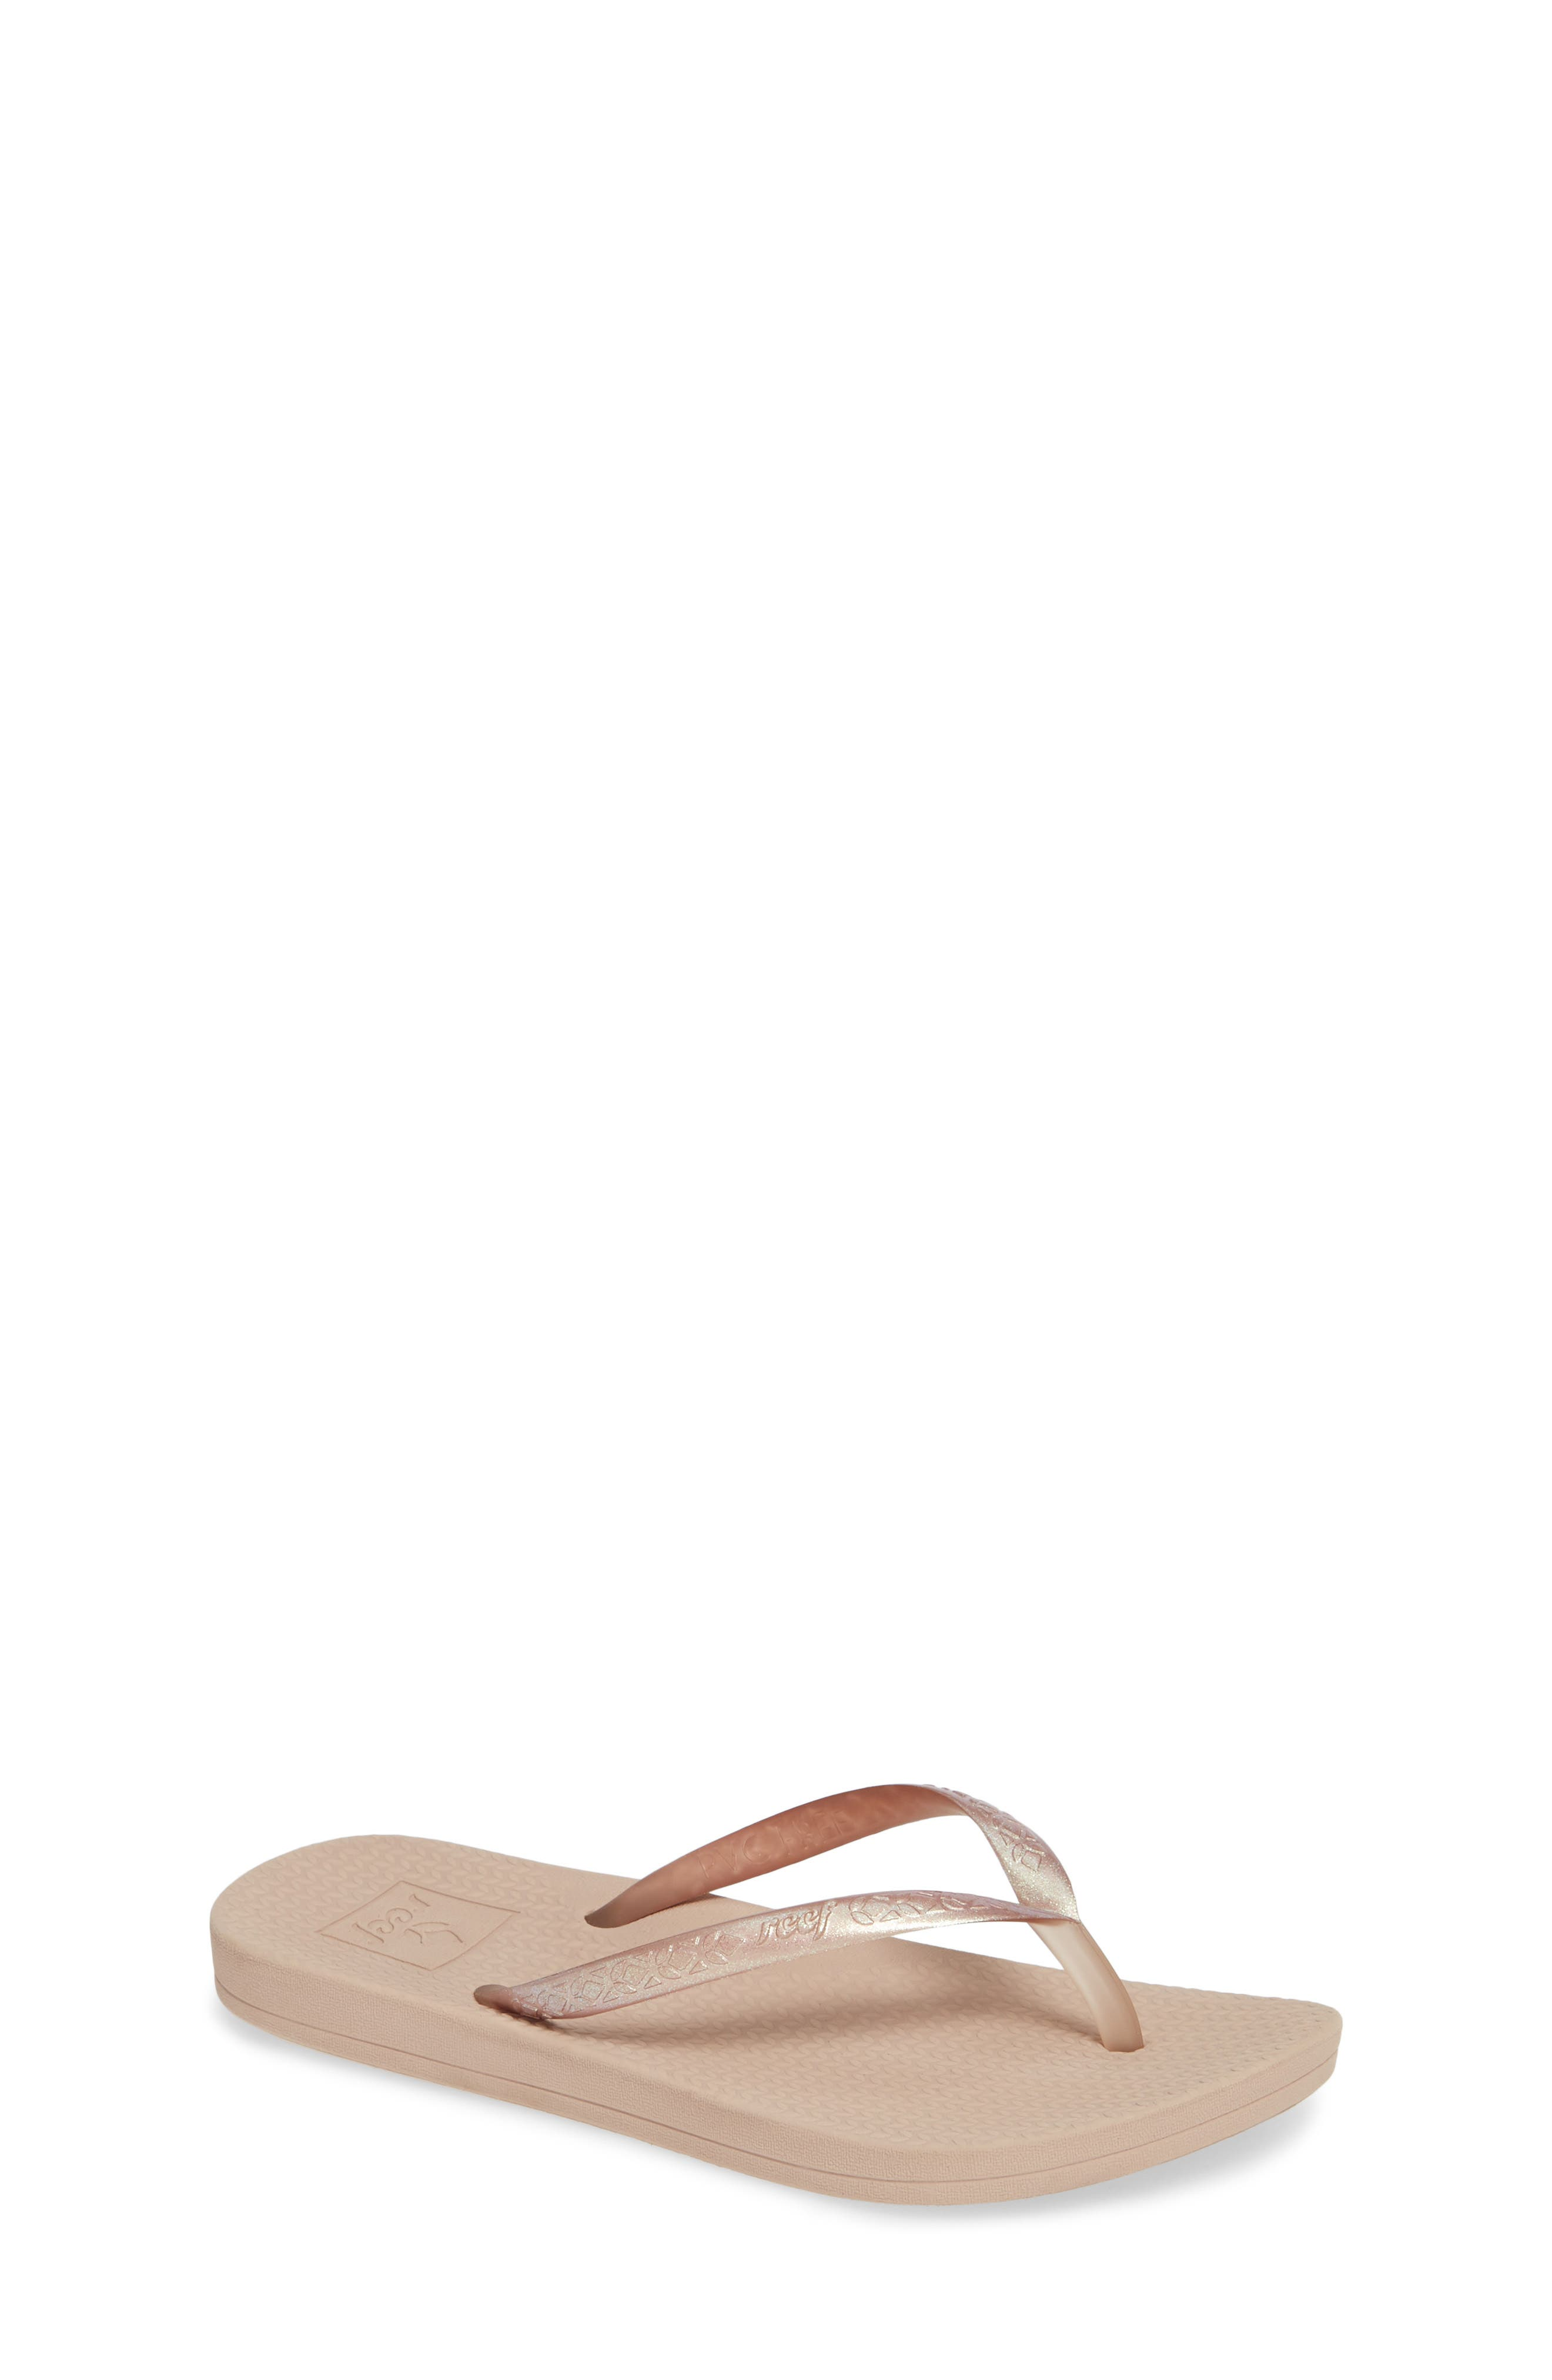 REEF, Escape Lux Metals Flip Flop, Main thumbnail 1, color, ROSE GOLD